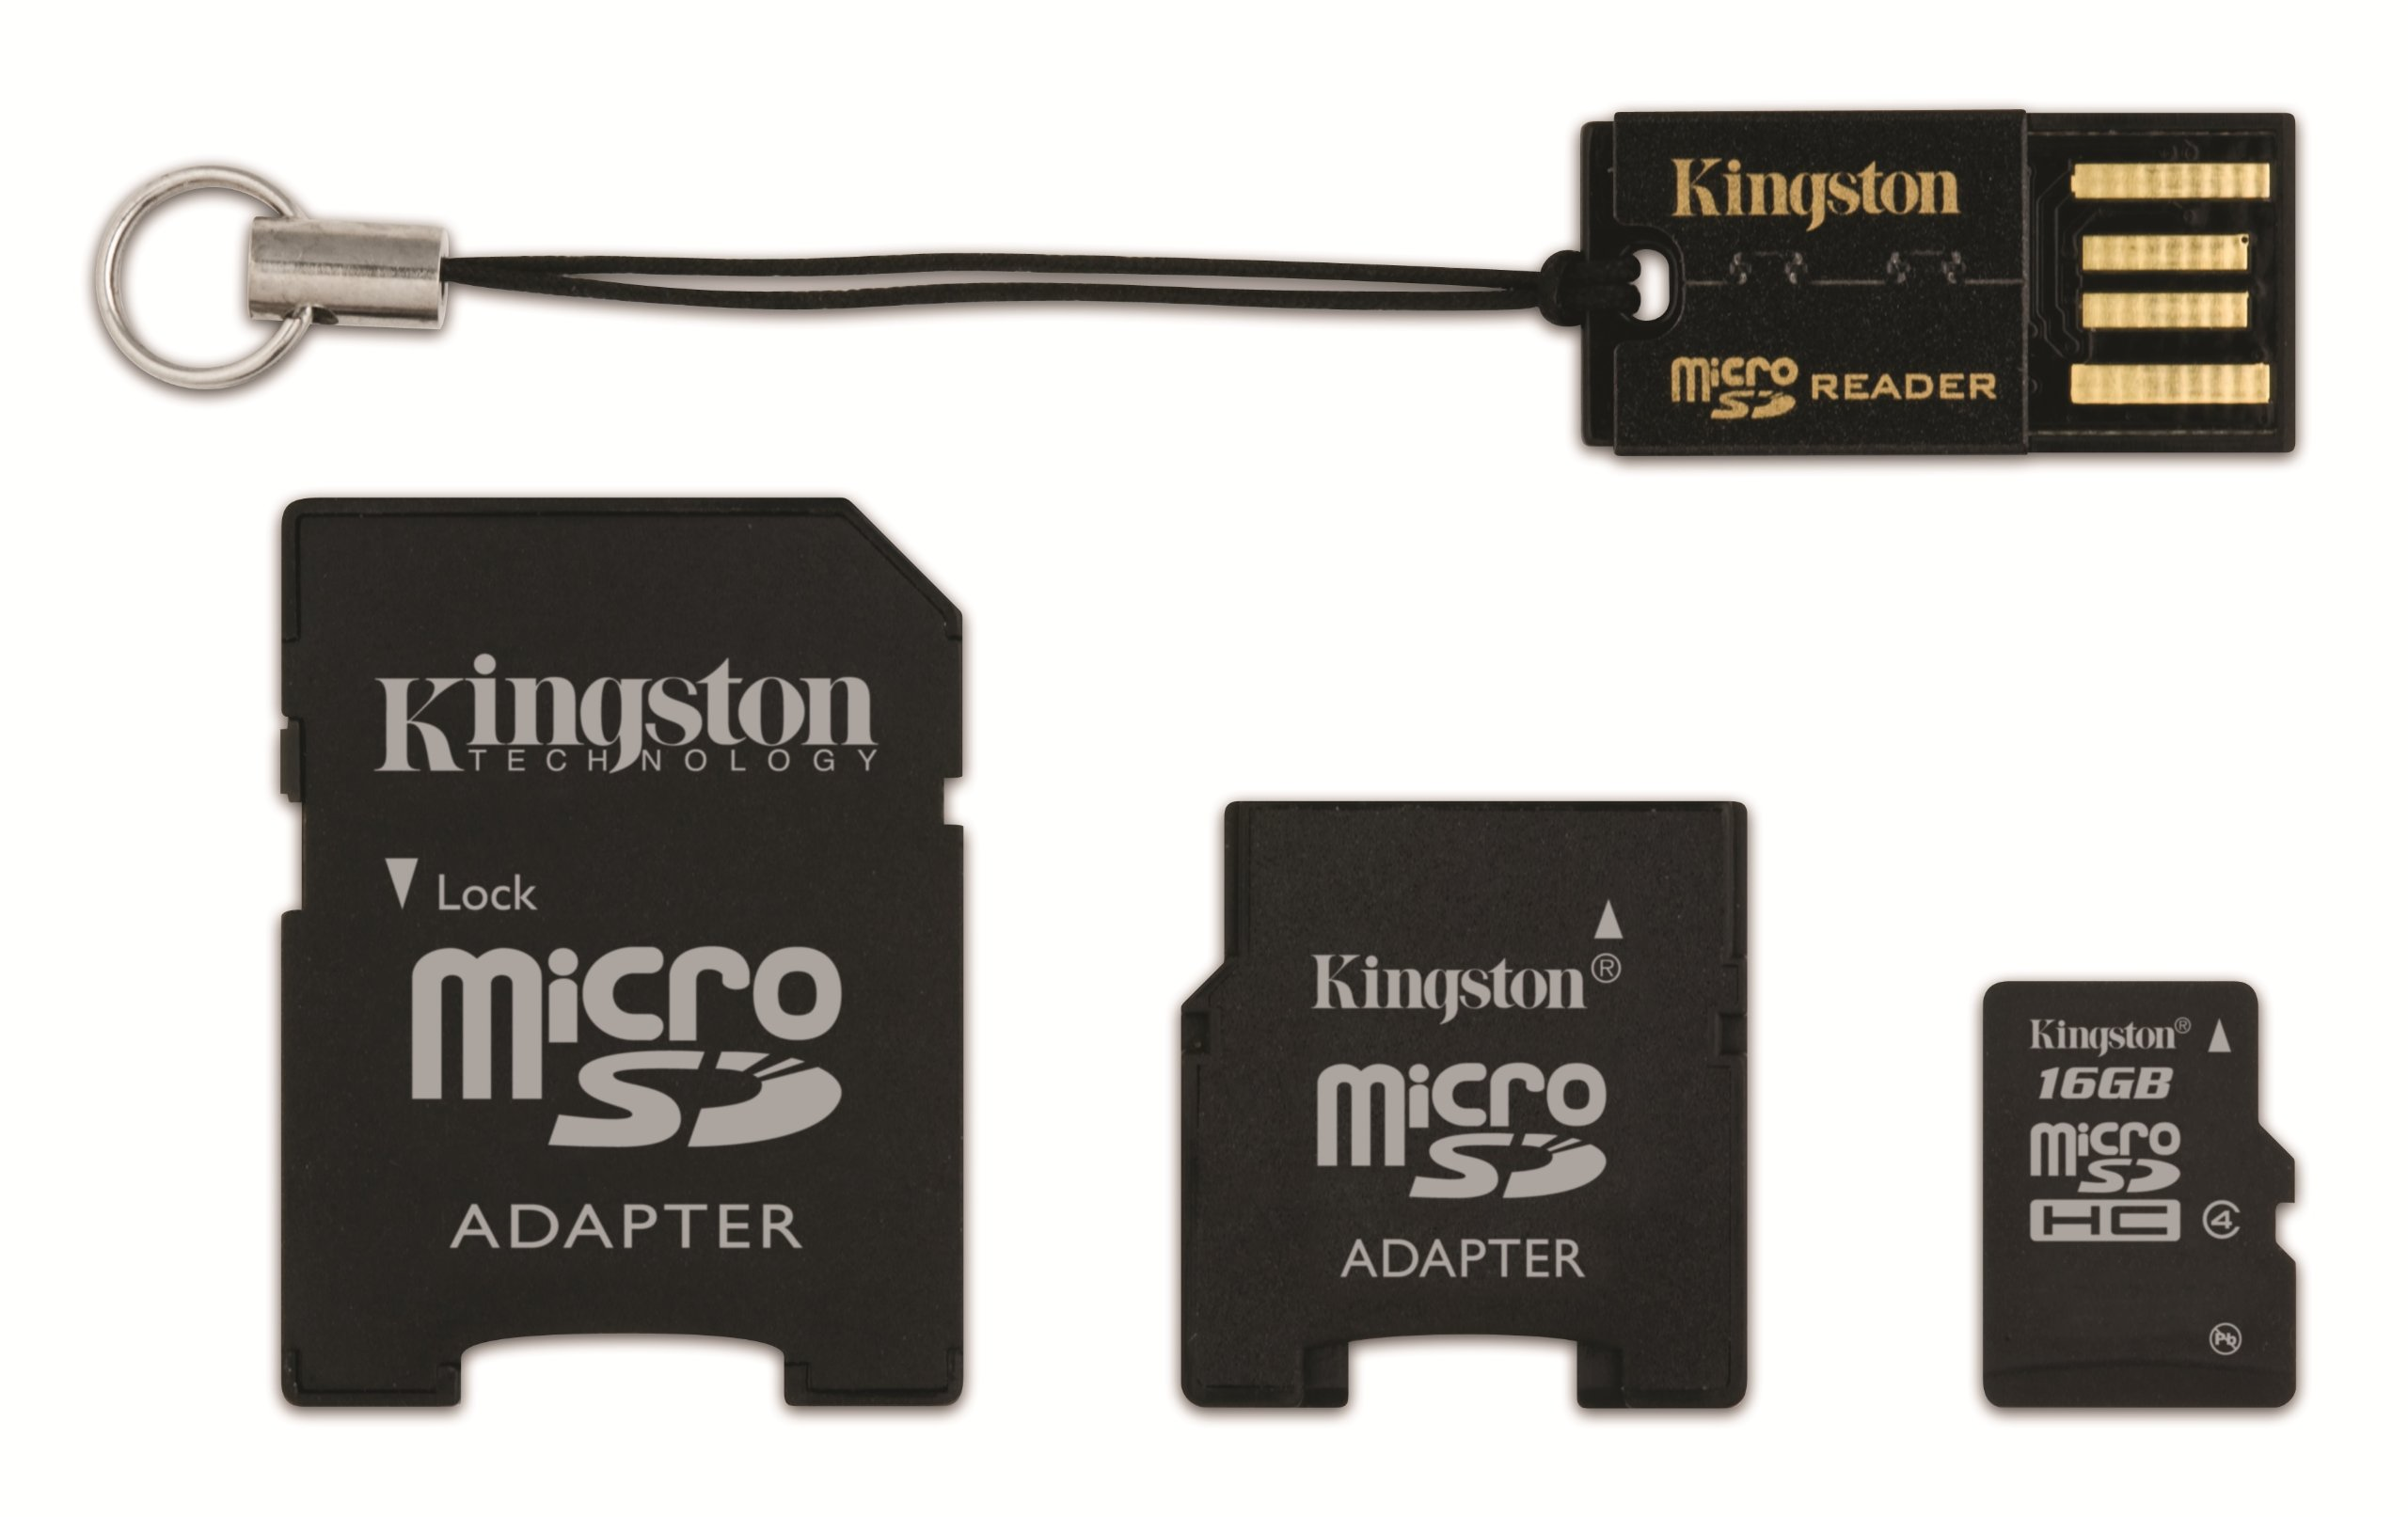 Kingston Mobility Kit - 16 GB microSDHC Flash Memory Card with SD and miniSD Adapters + USB Reader MBLYG2/16GB